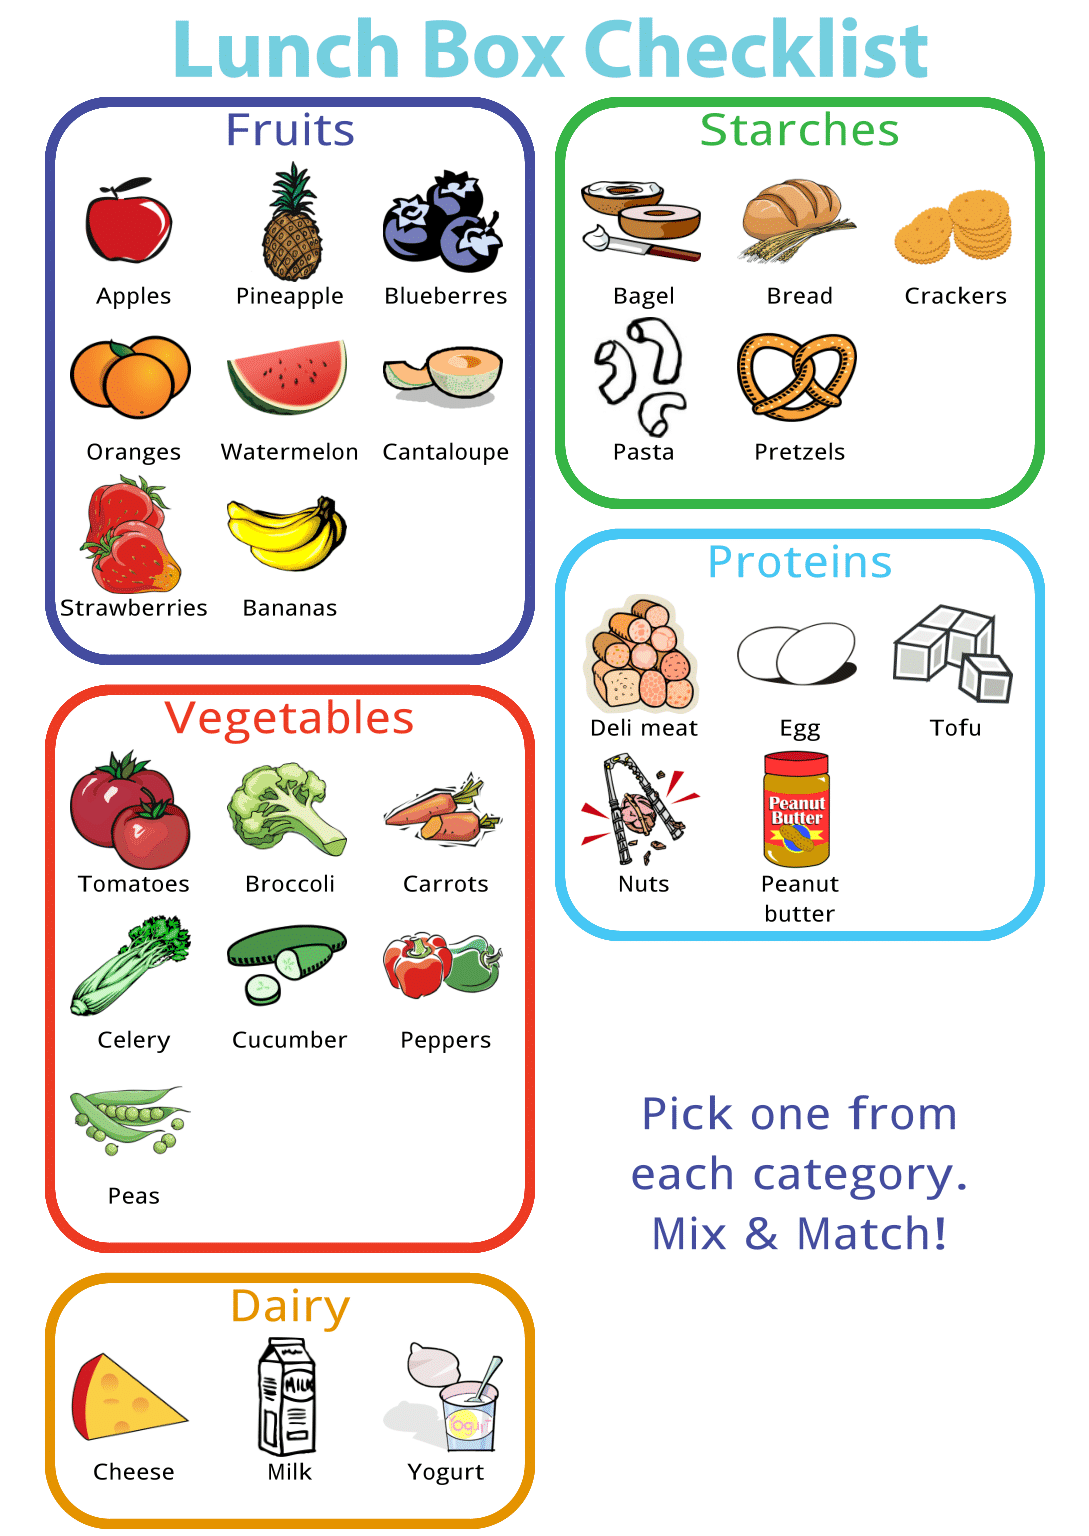 Make Any Picture Checklist is part of Healthy lunches for kids - Free printable checklist  print it as is or edit it to make it just right